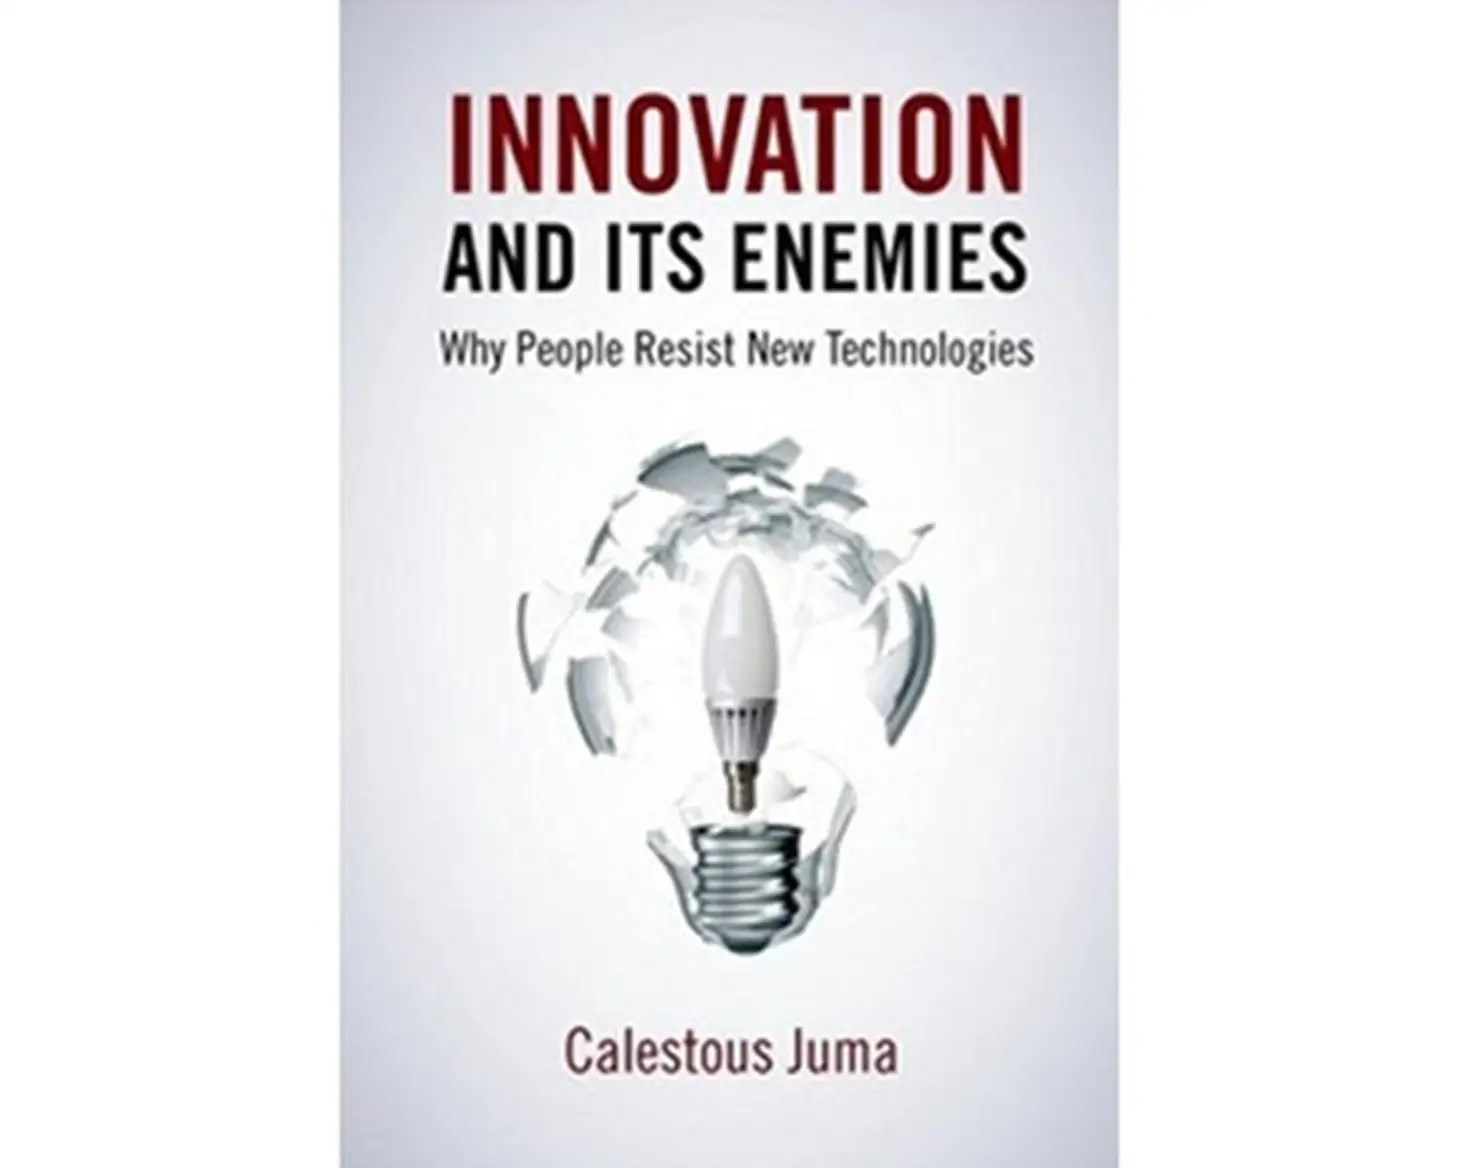 """Innovation and Its Enemies: Why People Resist New Technologies"" by Calestous Juma"